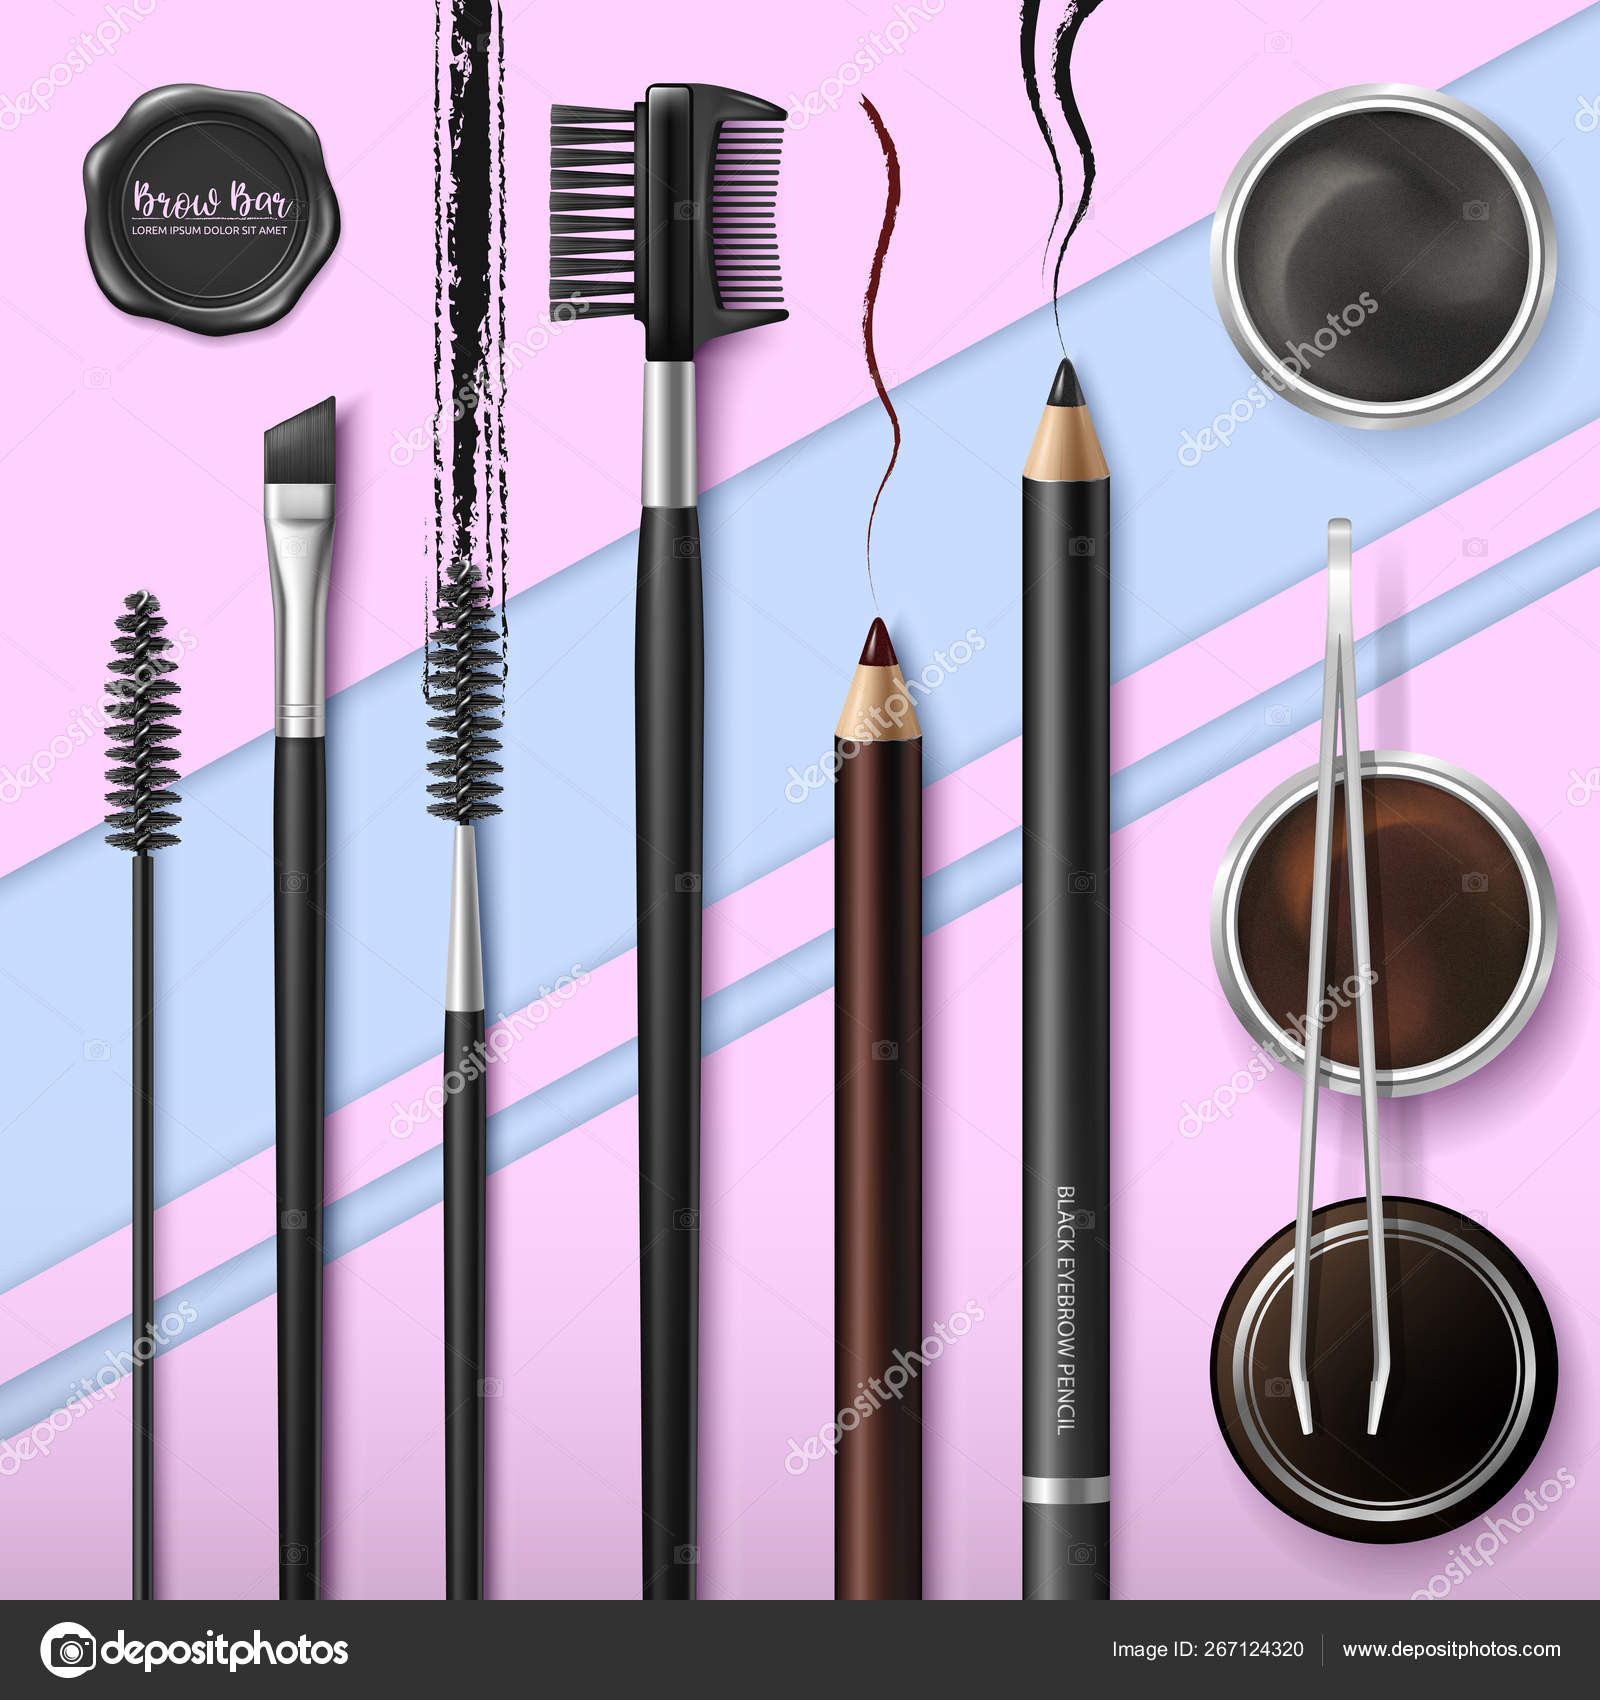 Lash and Brow Bar  Accessories  Make up  Tools for care of